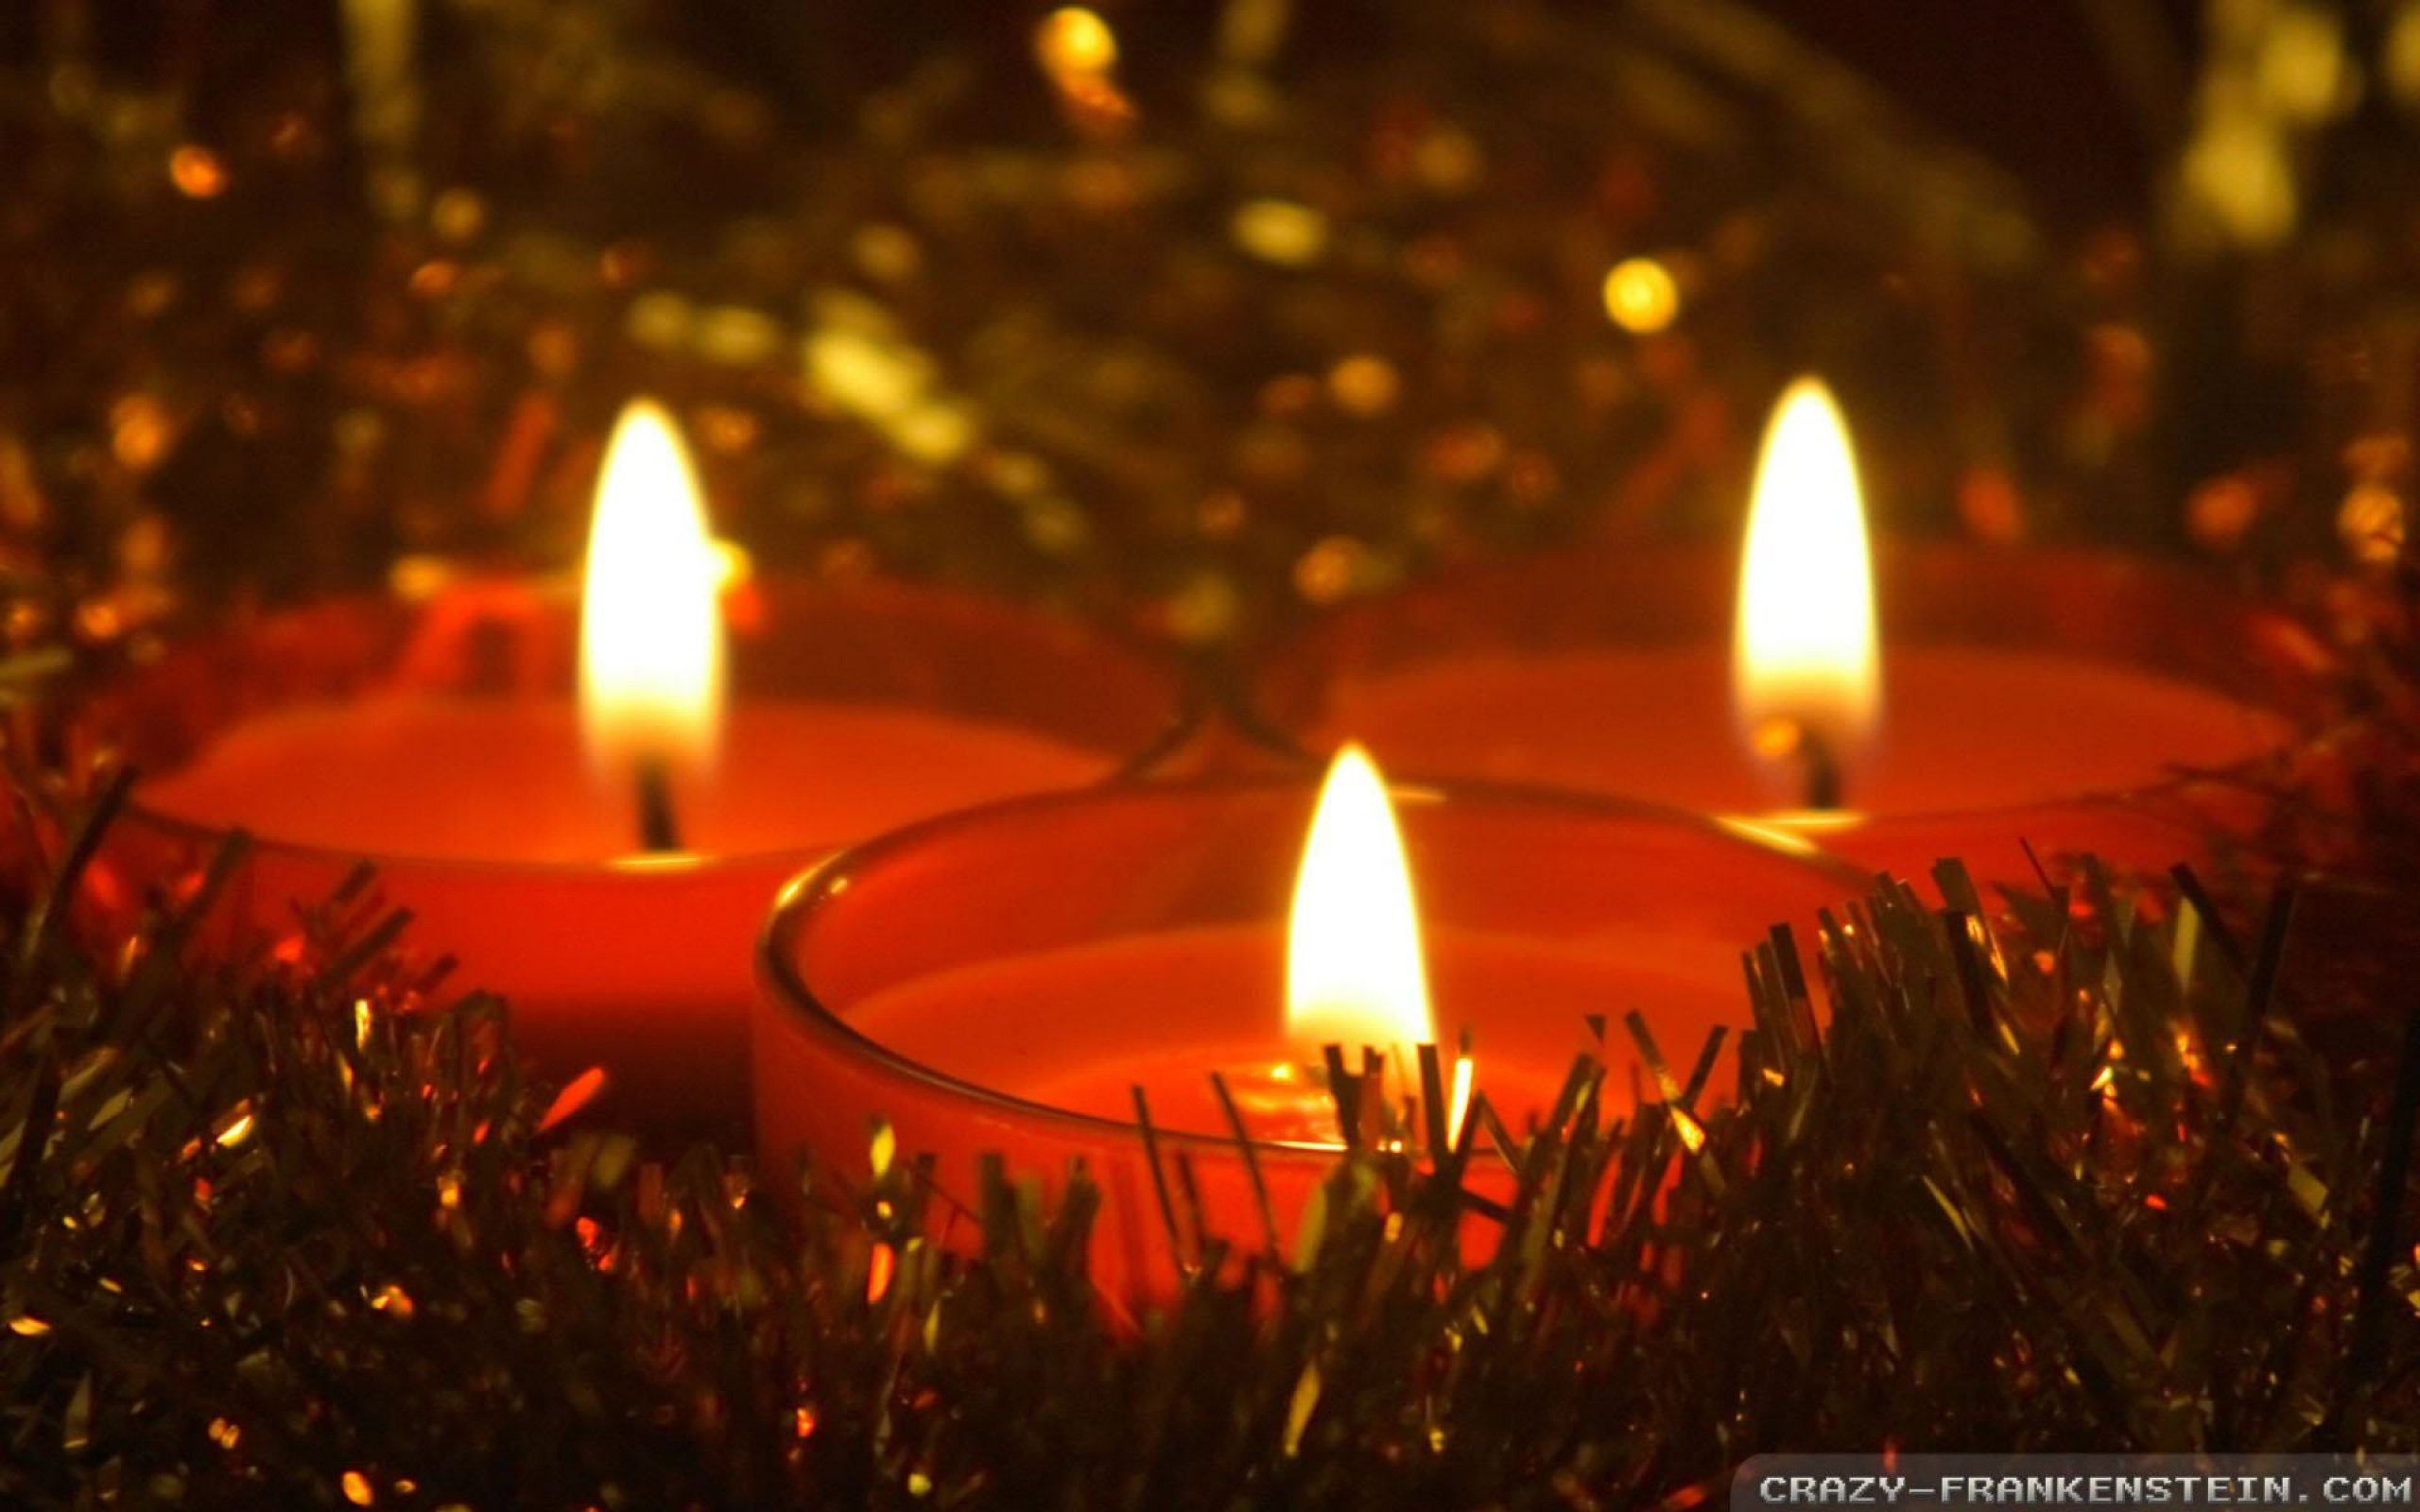 Christmas Candles Crazy Frankenstein Wallpapers wallpapers backgrounds 2560x1600